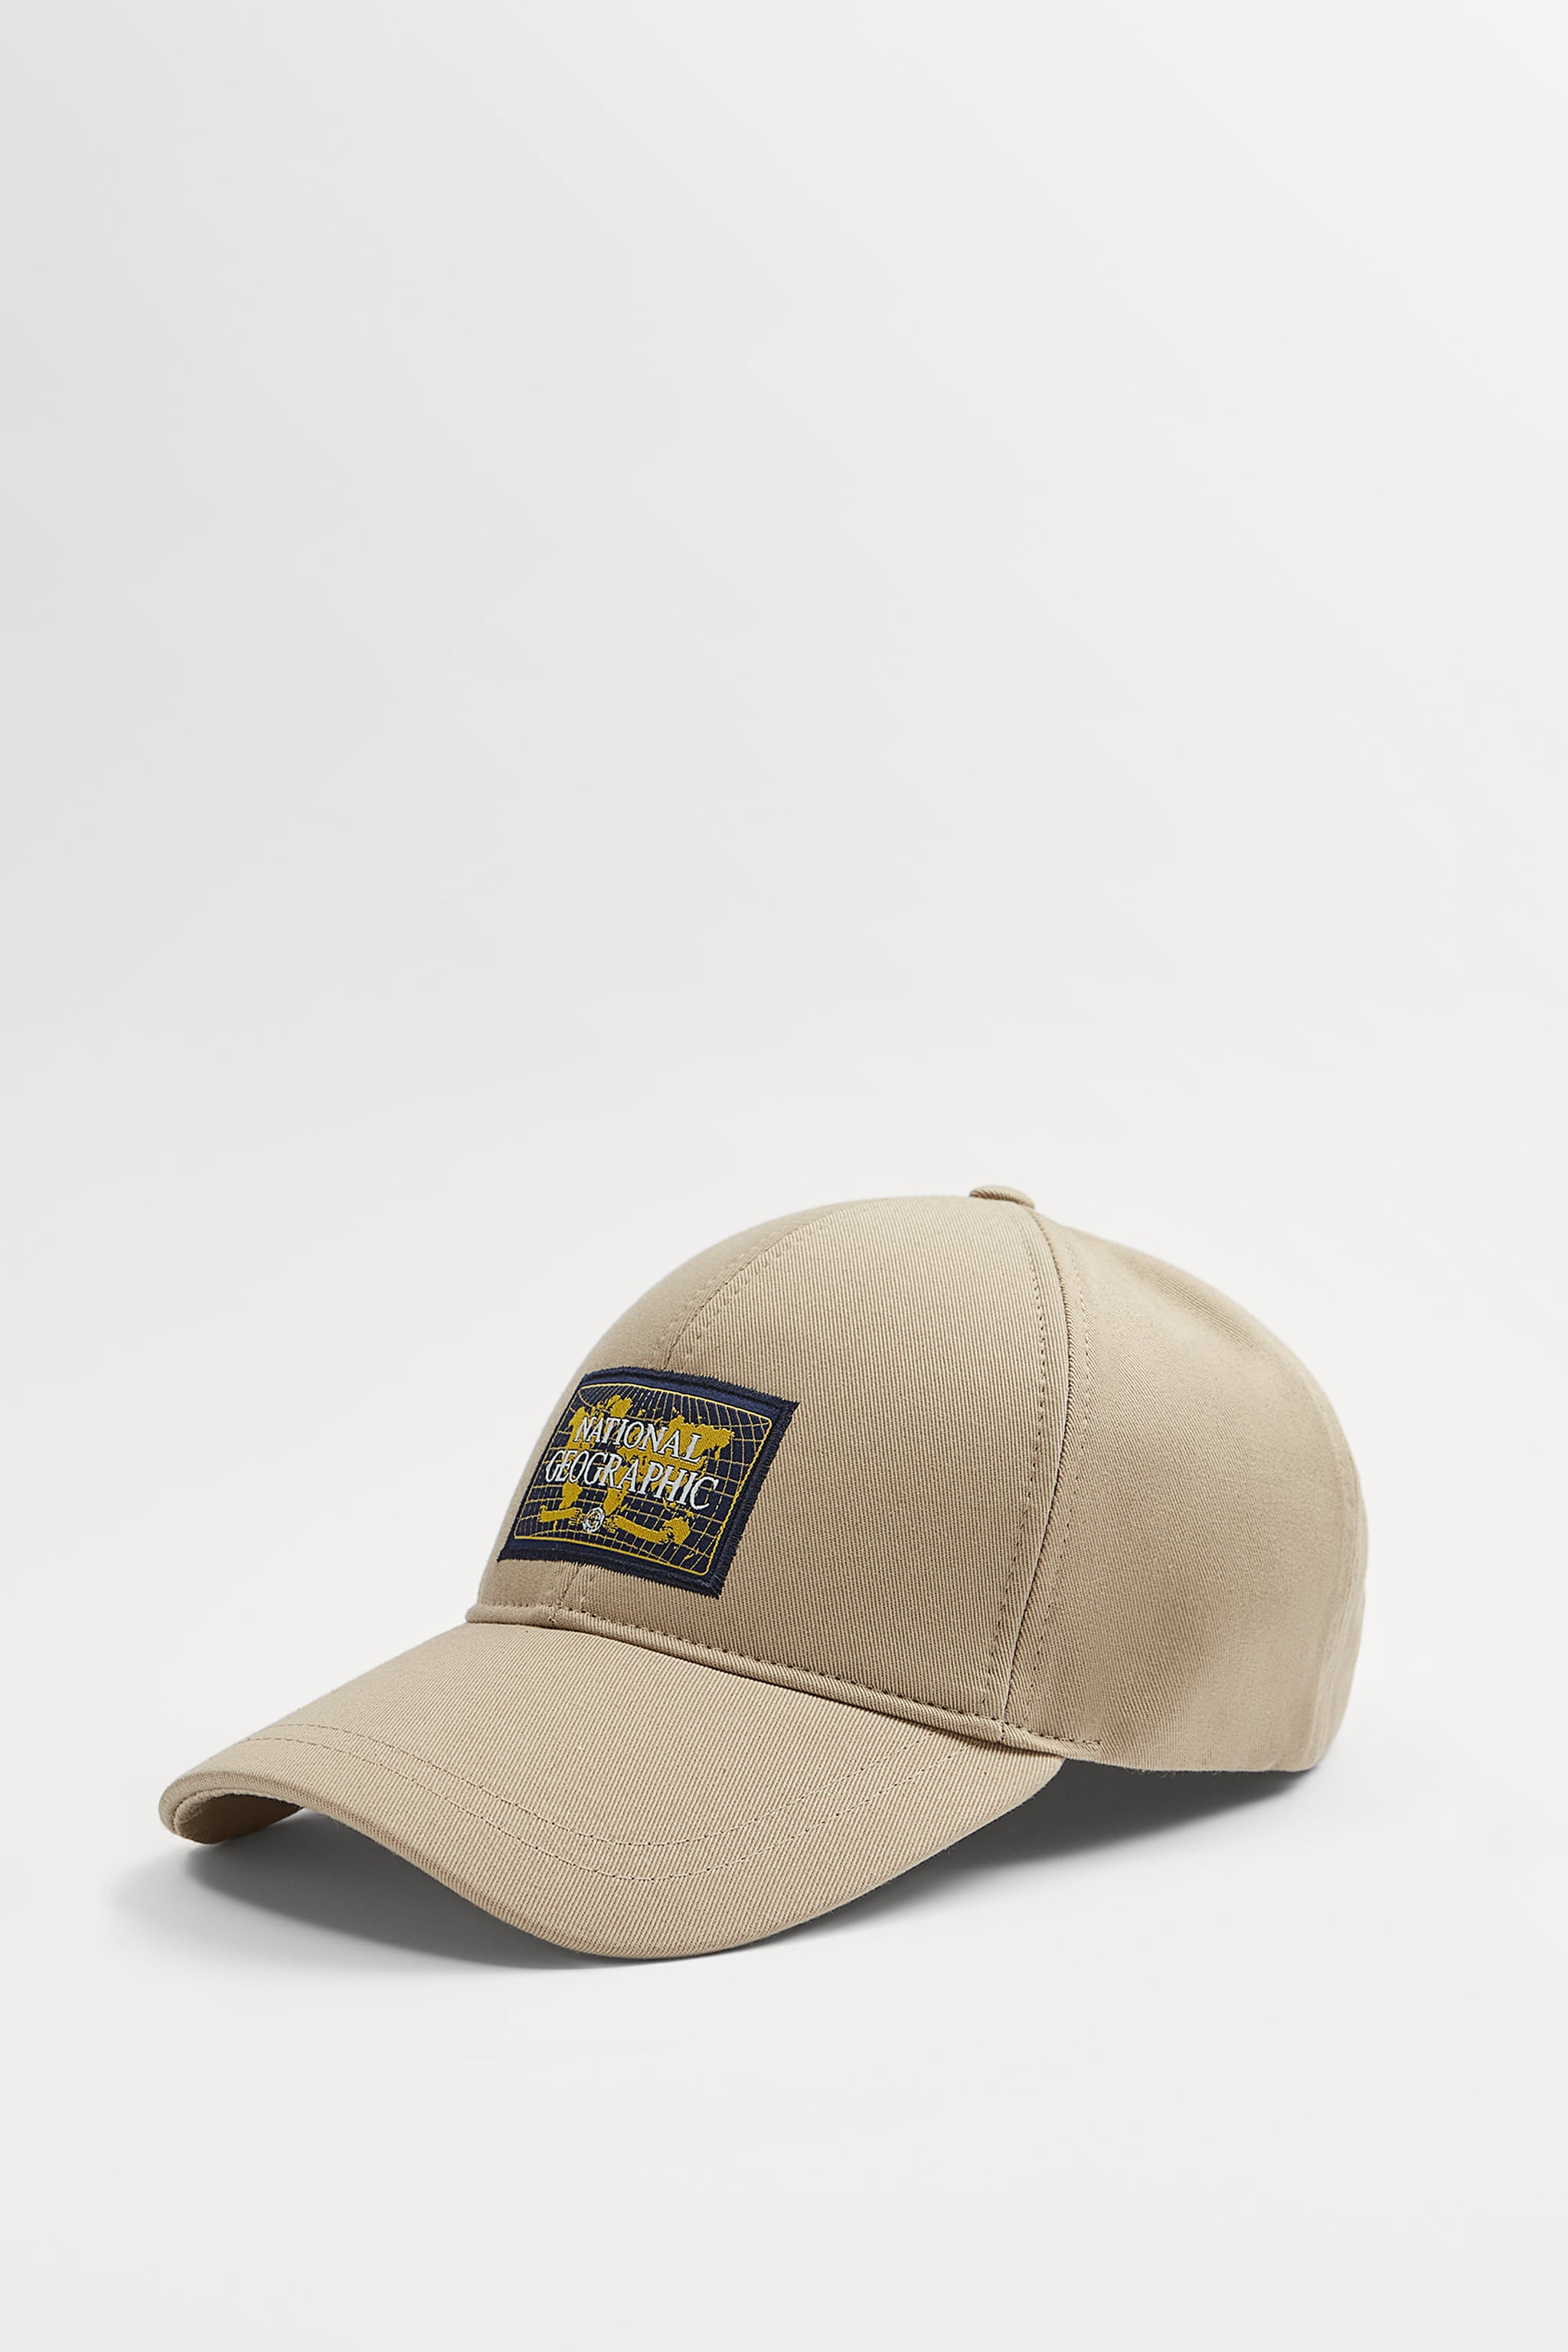 Zara NATIONAL GEOGRAPHIC PATCH CAP